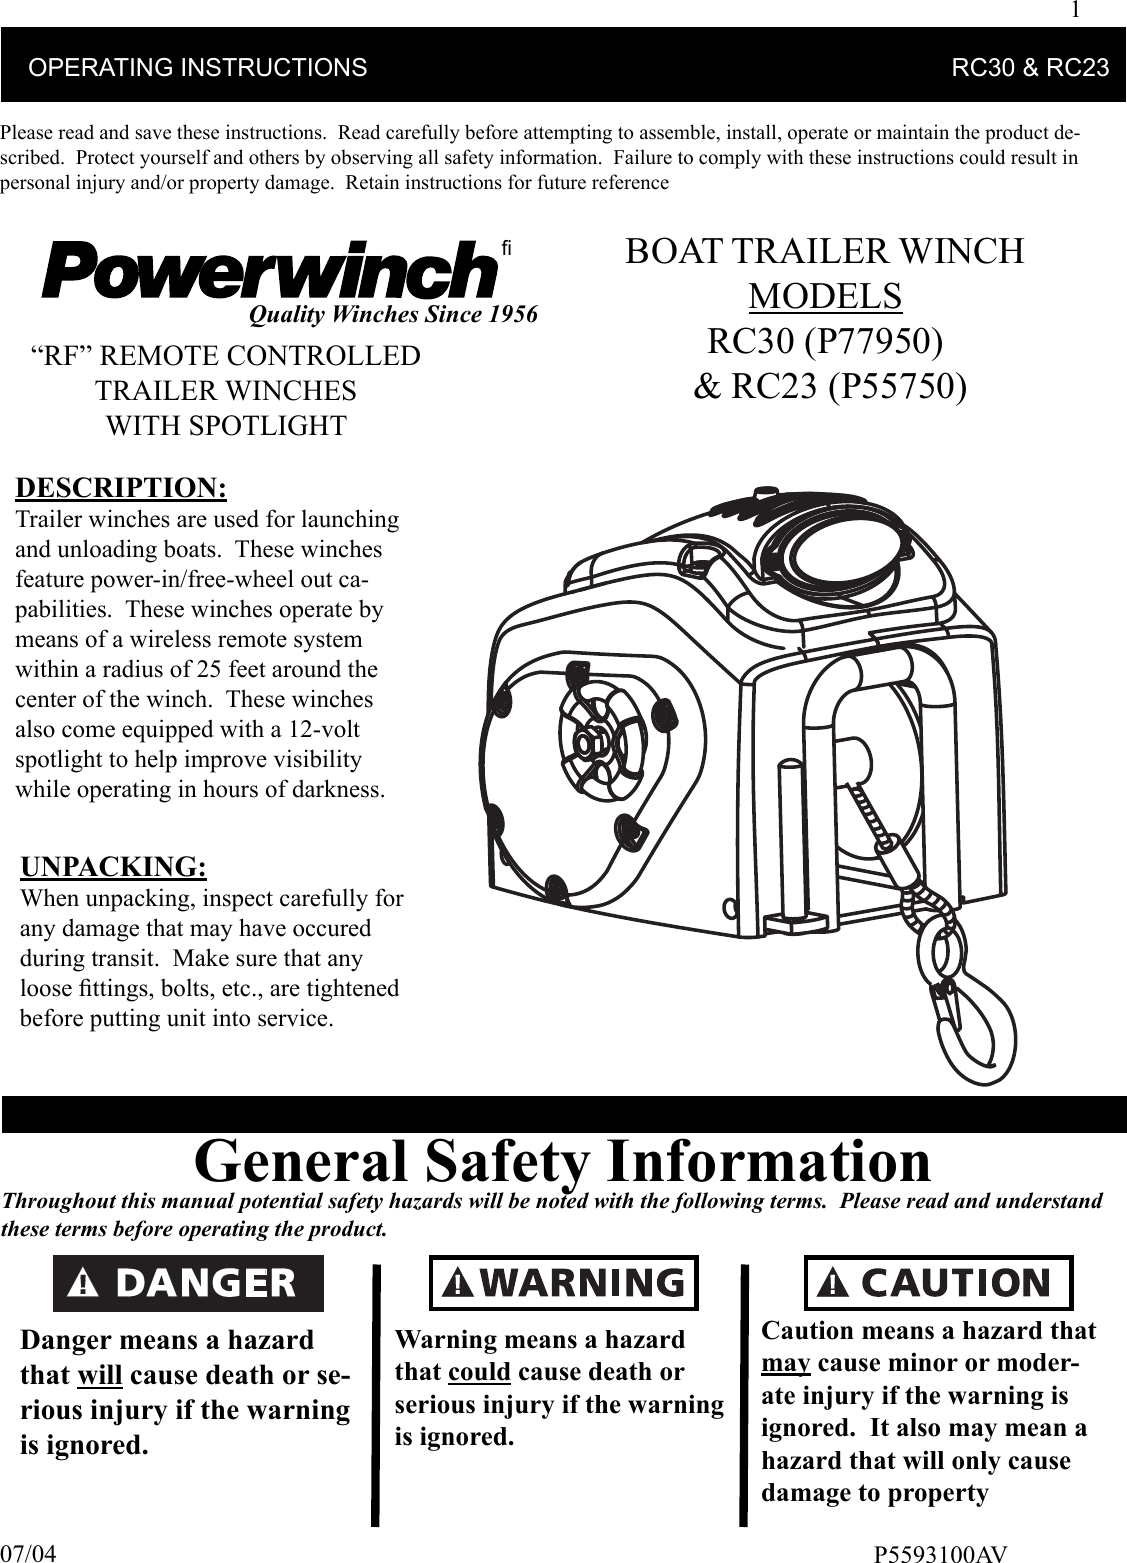 Delta Systems 2023 001 Remote Control User Manual P5593100av Indd Boat Trailer Winch Wiring Diagram 1 Operating Instructions Rc30 Amp Rc23please Read And Save These Carefully Before